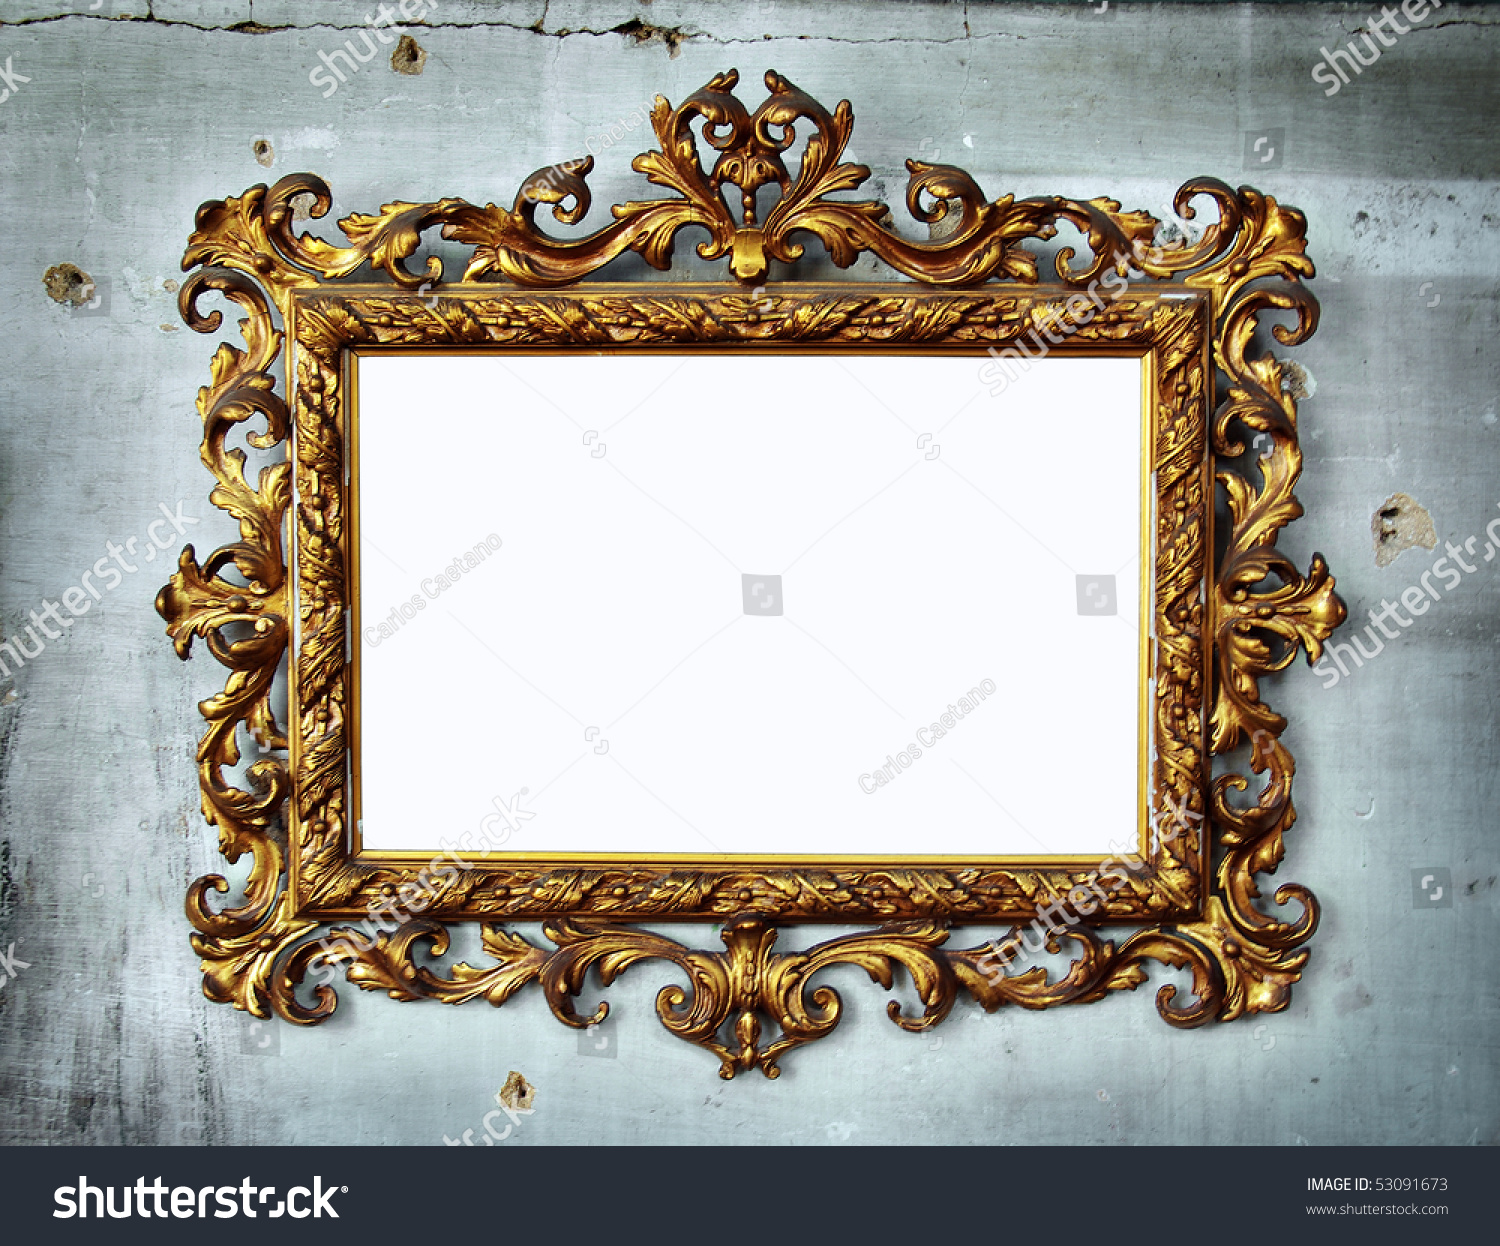 Beautiful golden baroque frame hanged in an old wall with holes and cracks